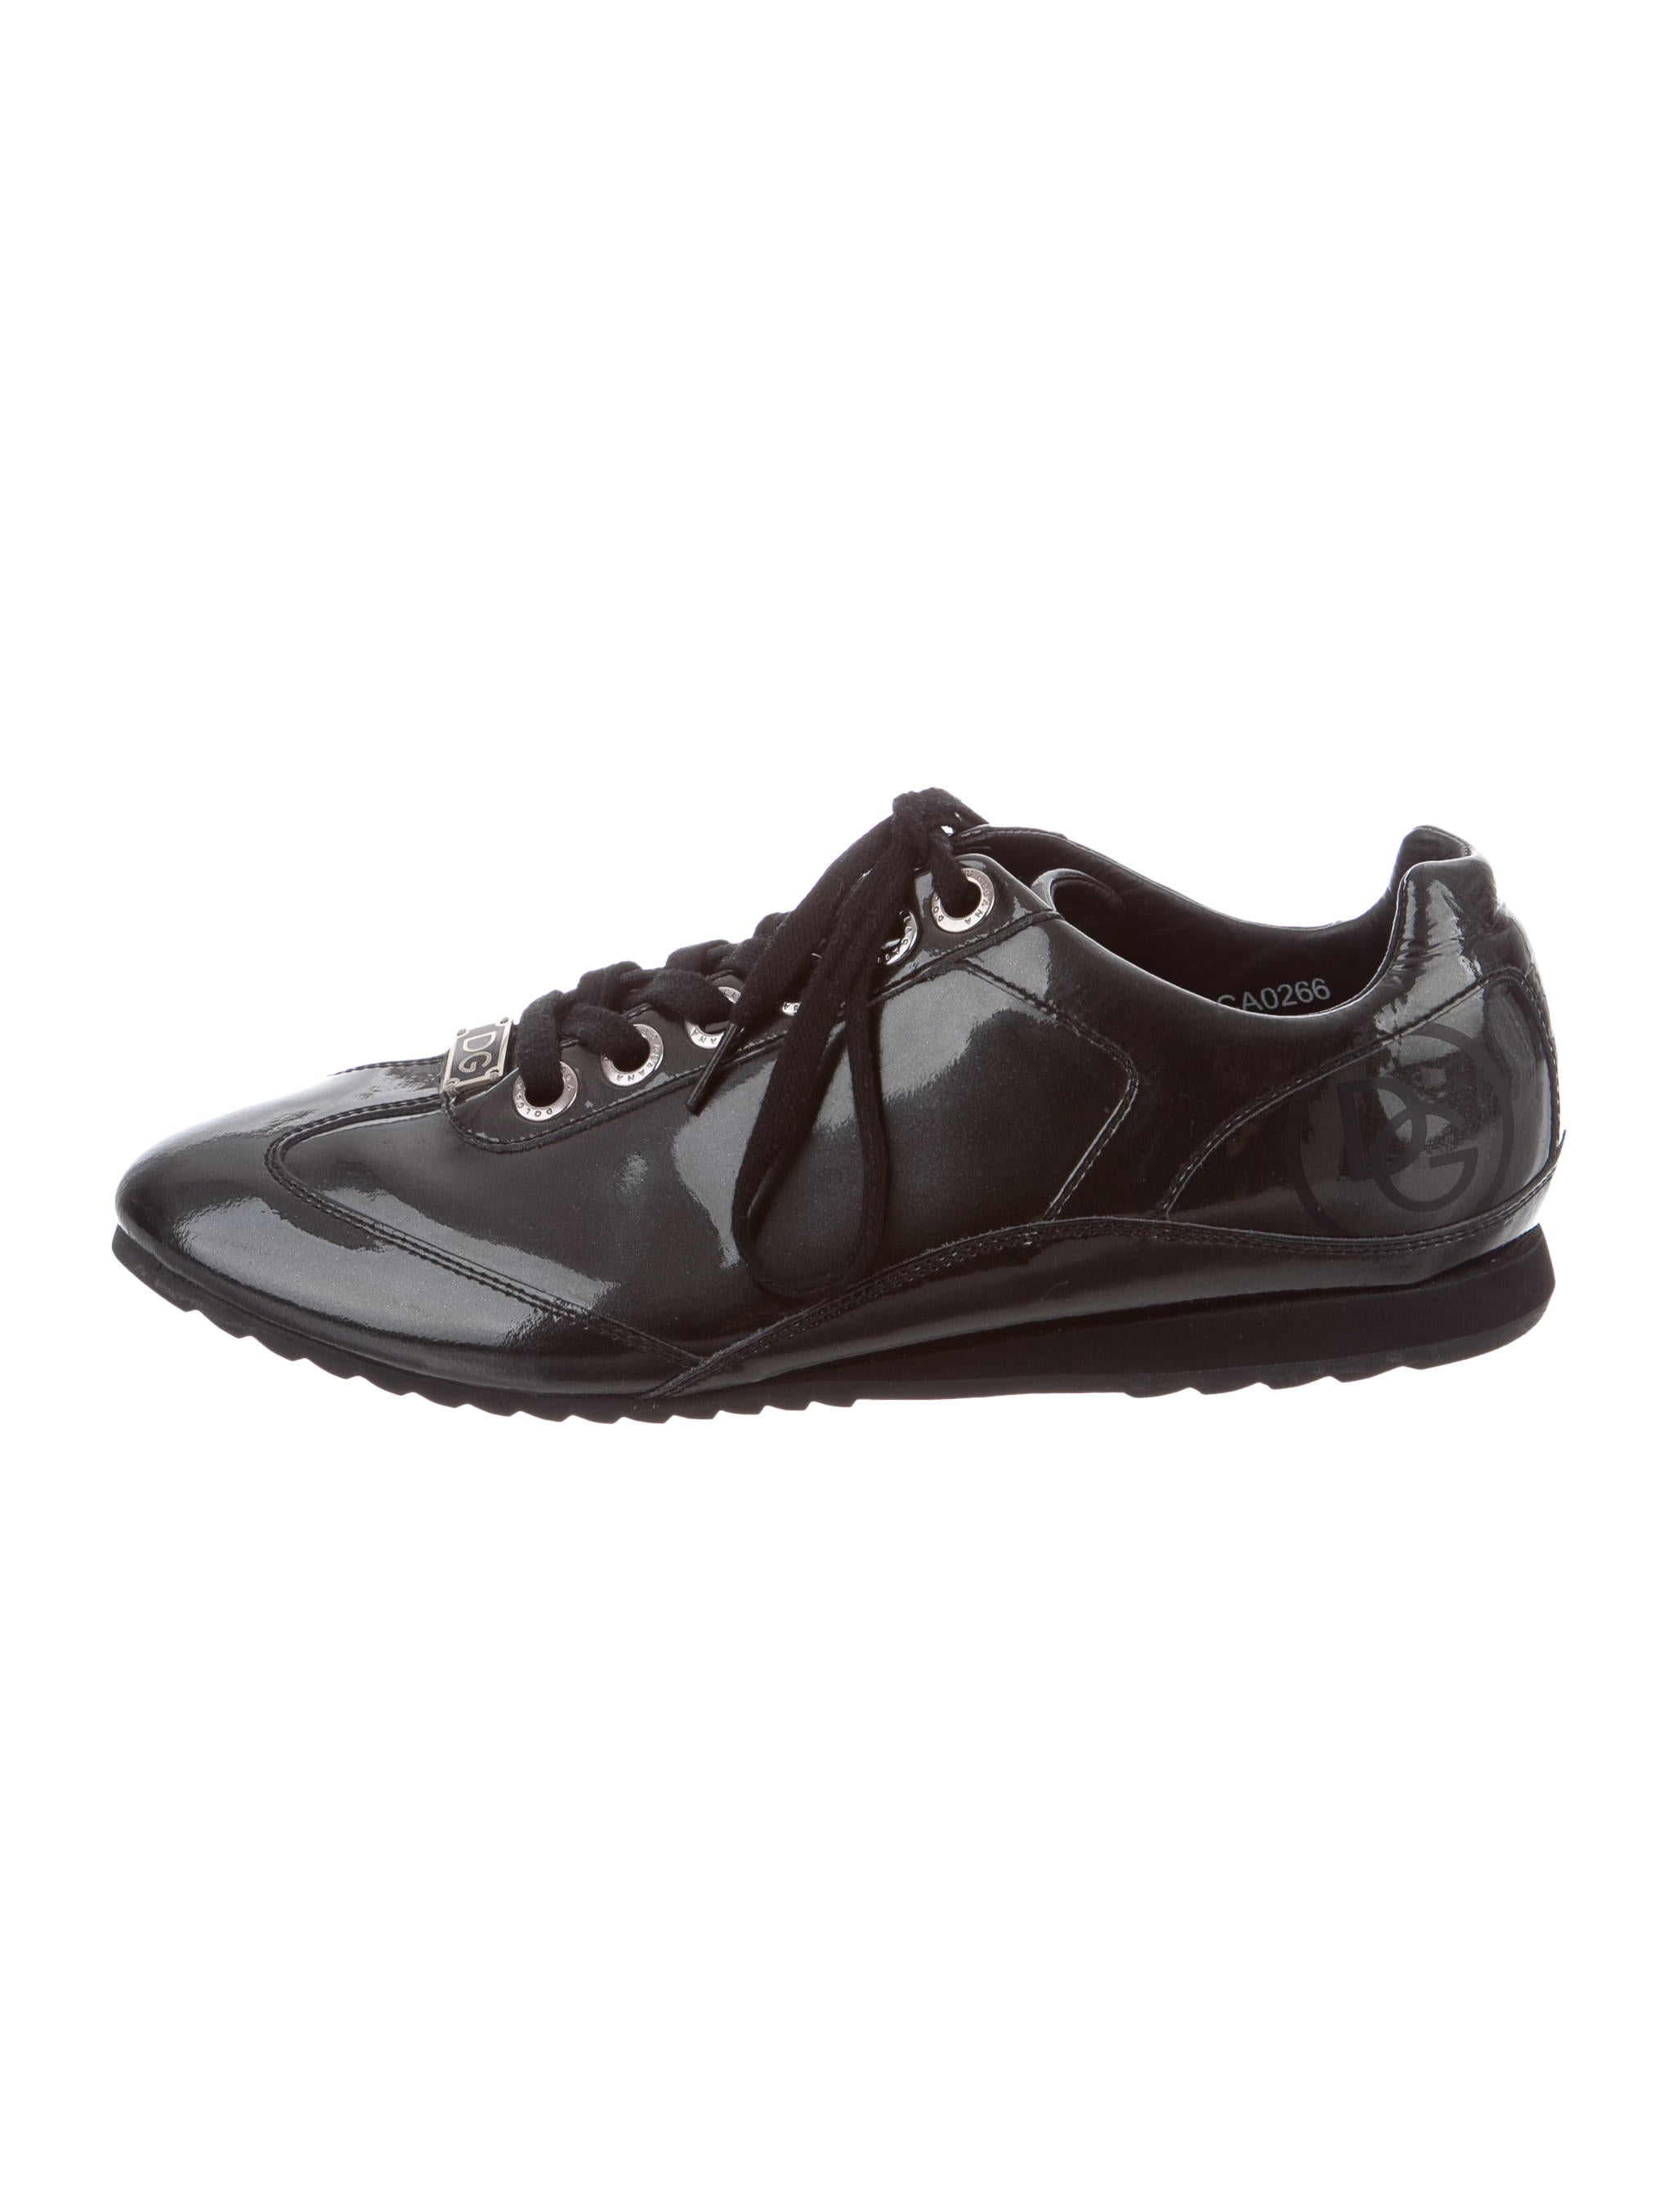 dolce gabbana logo patent leather sneakers shoes. Black Bedroom Furniture Sets. Home Design Ideas